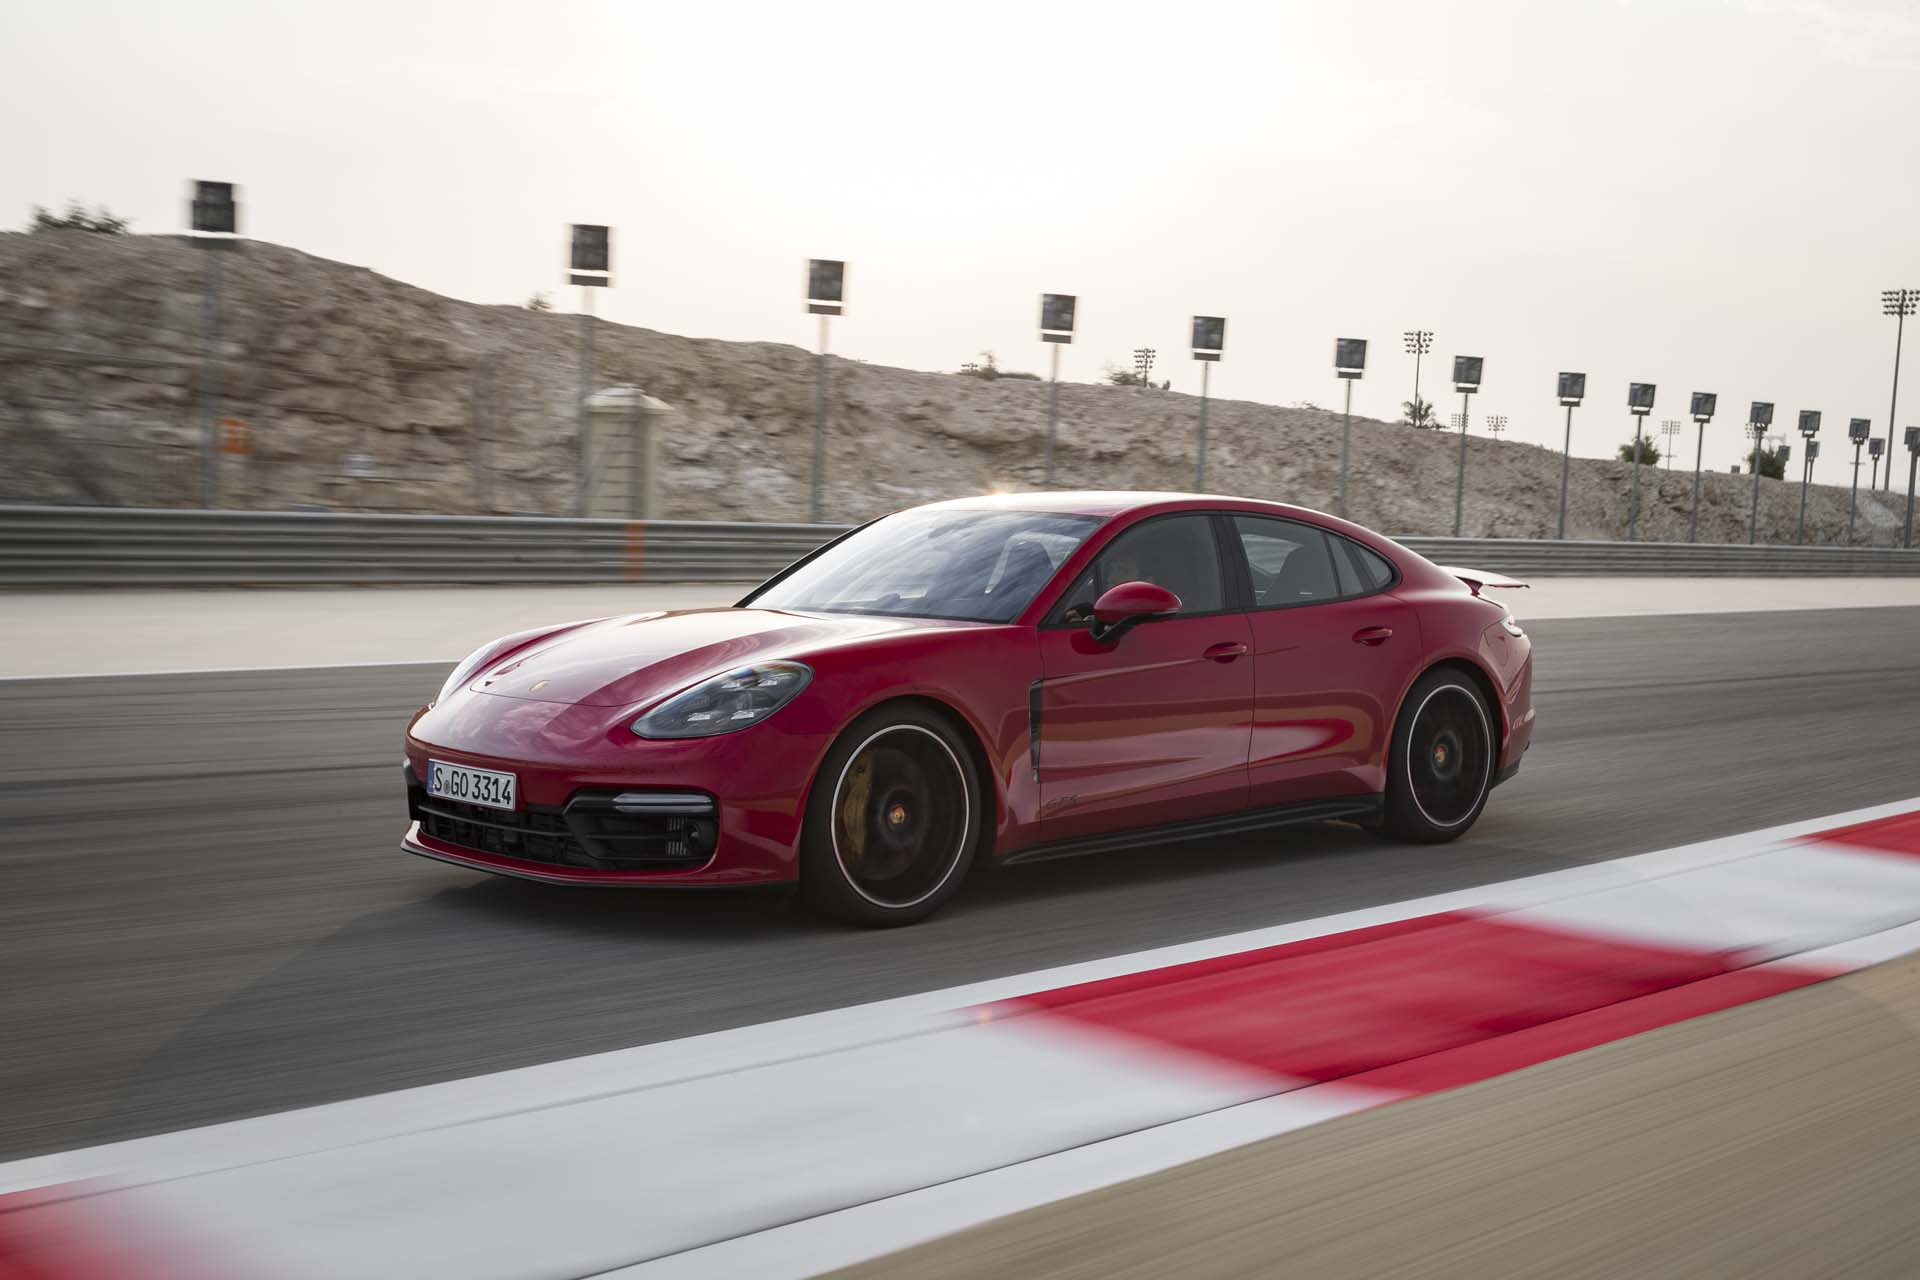 2019 Porsche Panamera Turbo, GTS, Price, And Redesign >> 2019 Porsche Panamera Gts First Drive Review Luxury For Every Occasion